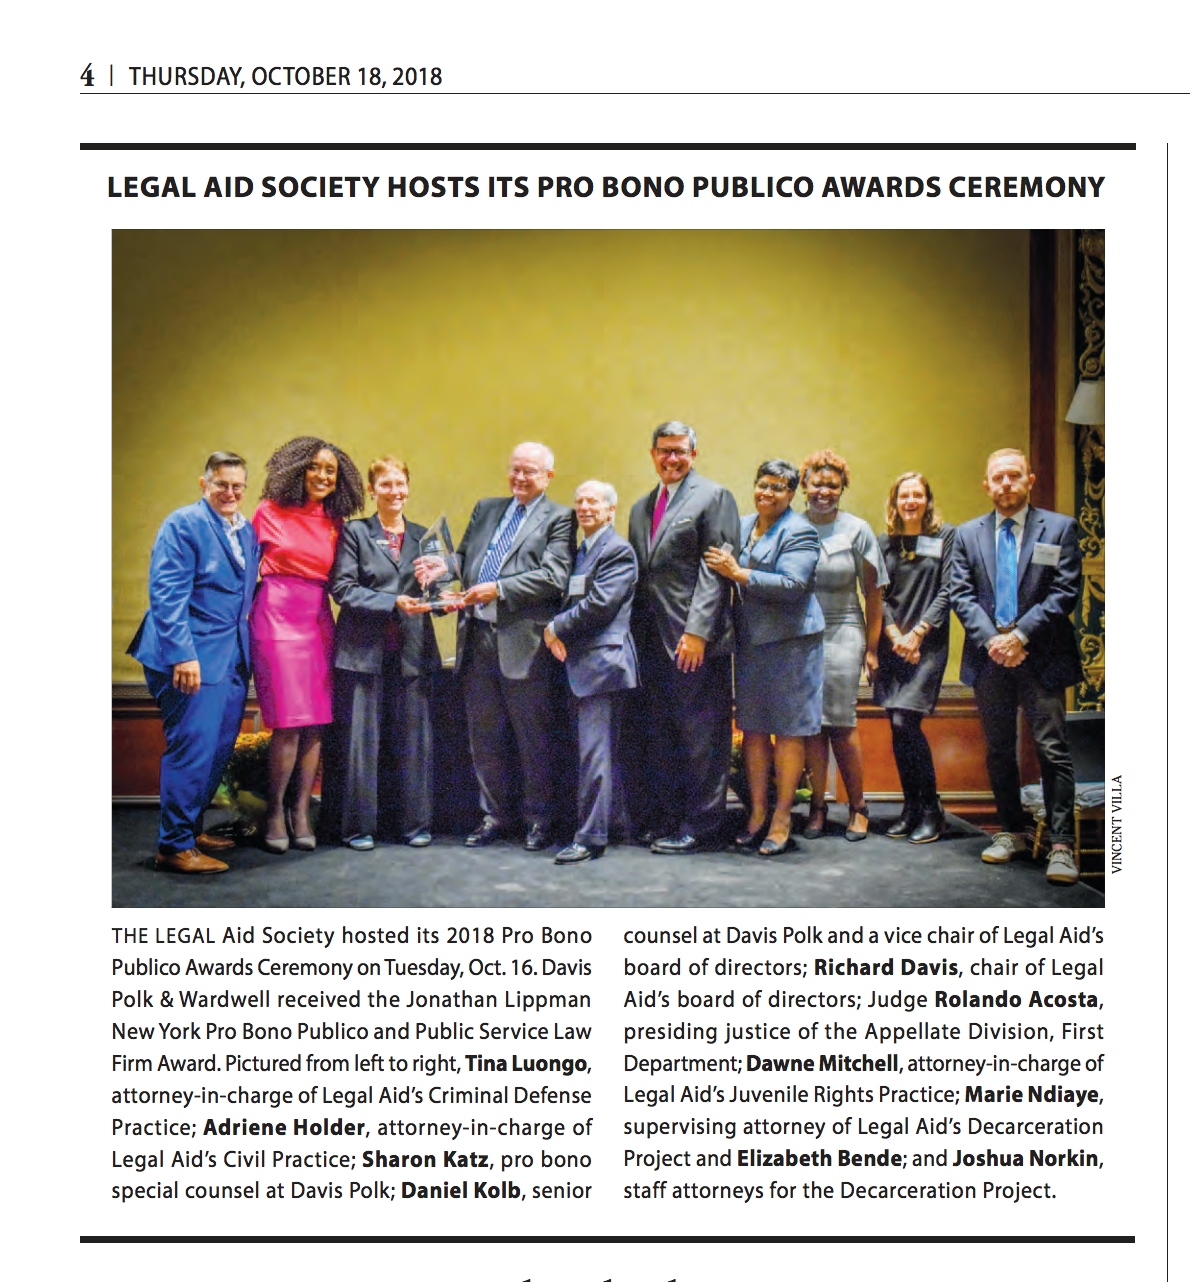 Legal Aid's 2018 Pro Bono Publico Awards Ceremony — The Legal Aid